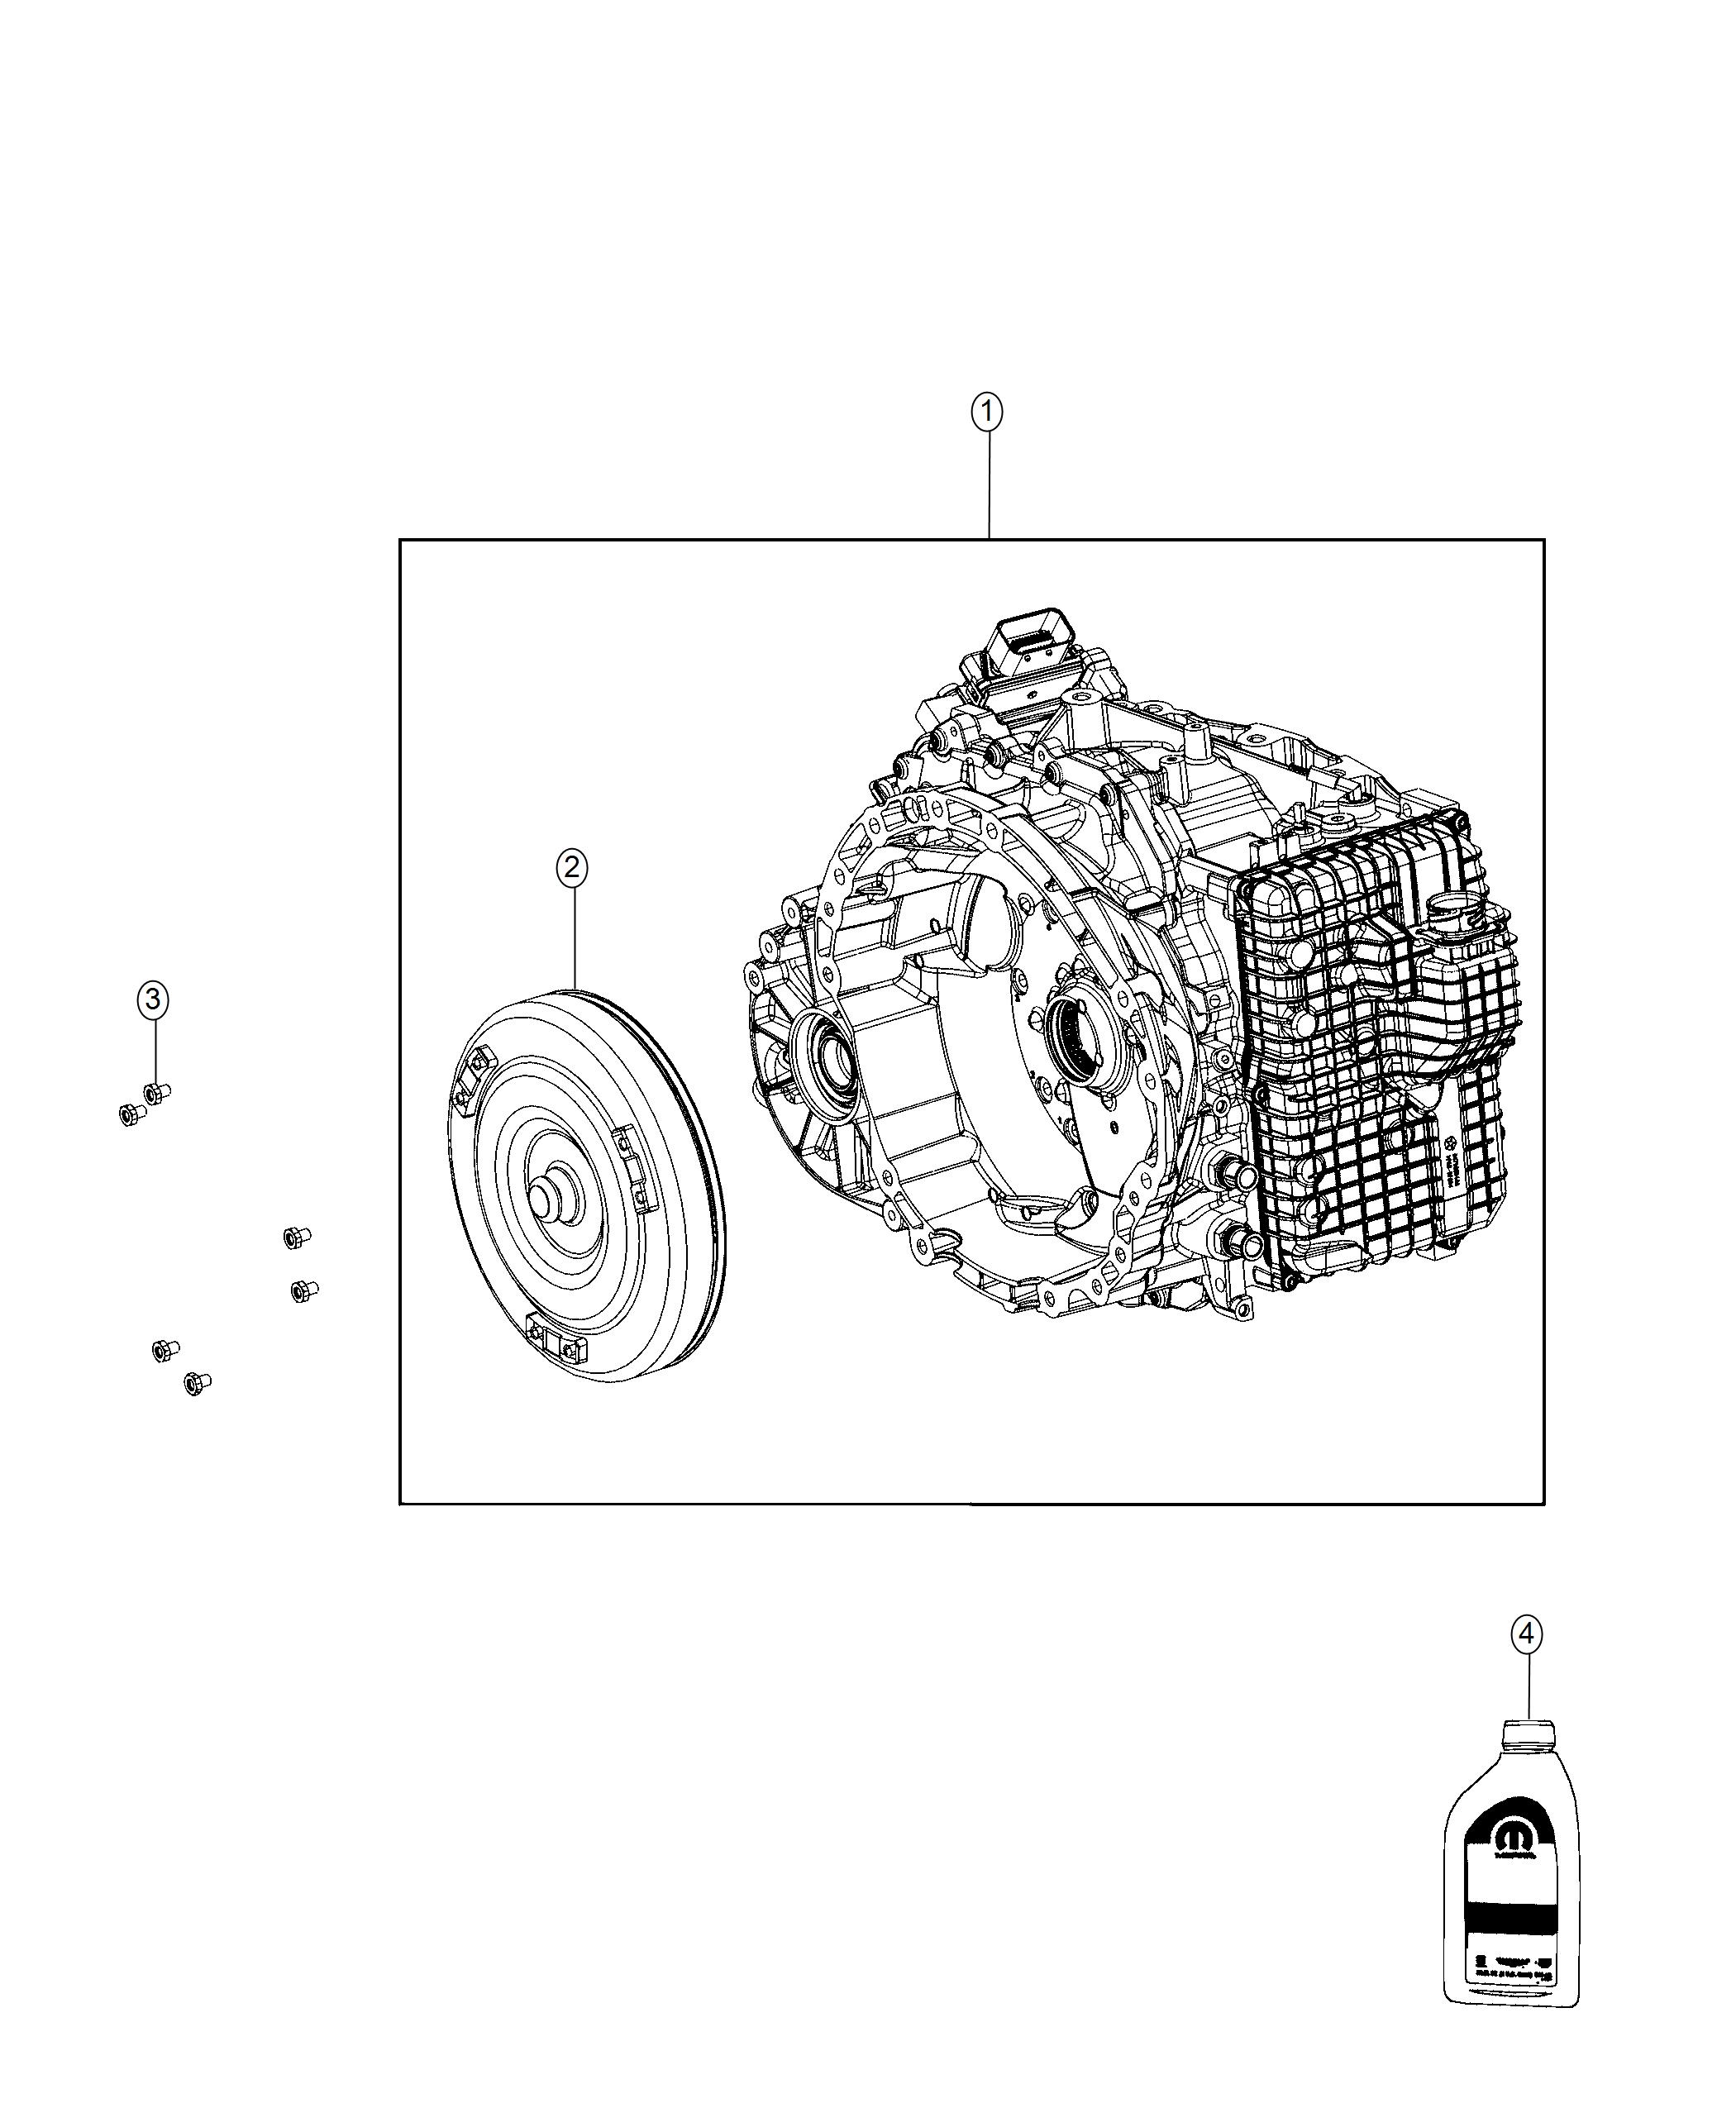 Chrysler Pacifica Transmission With Torque Converter